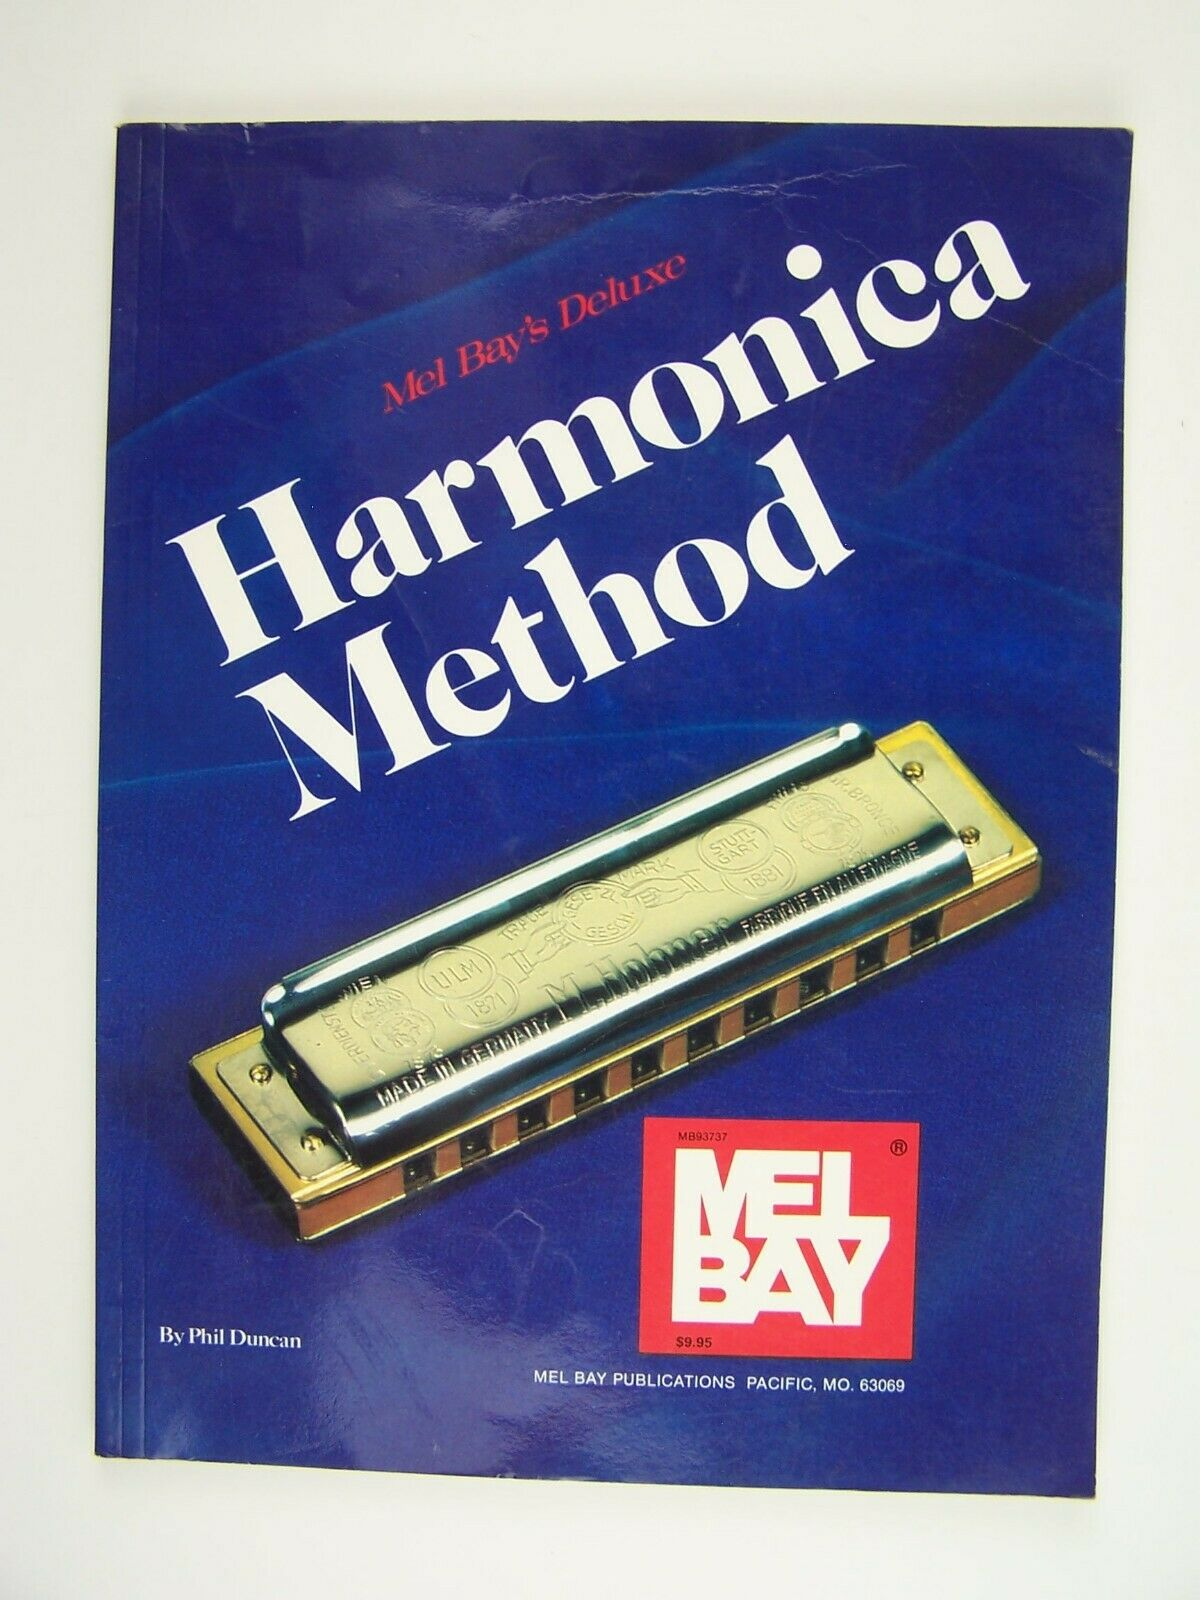 Mel Bay's Deluxe Harmonica Method Book by Phil Duncan